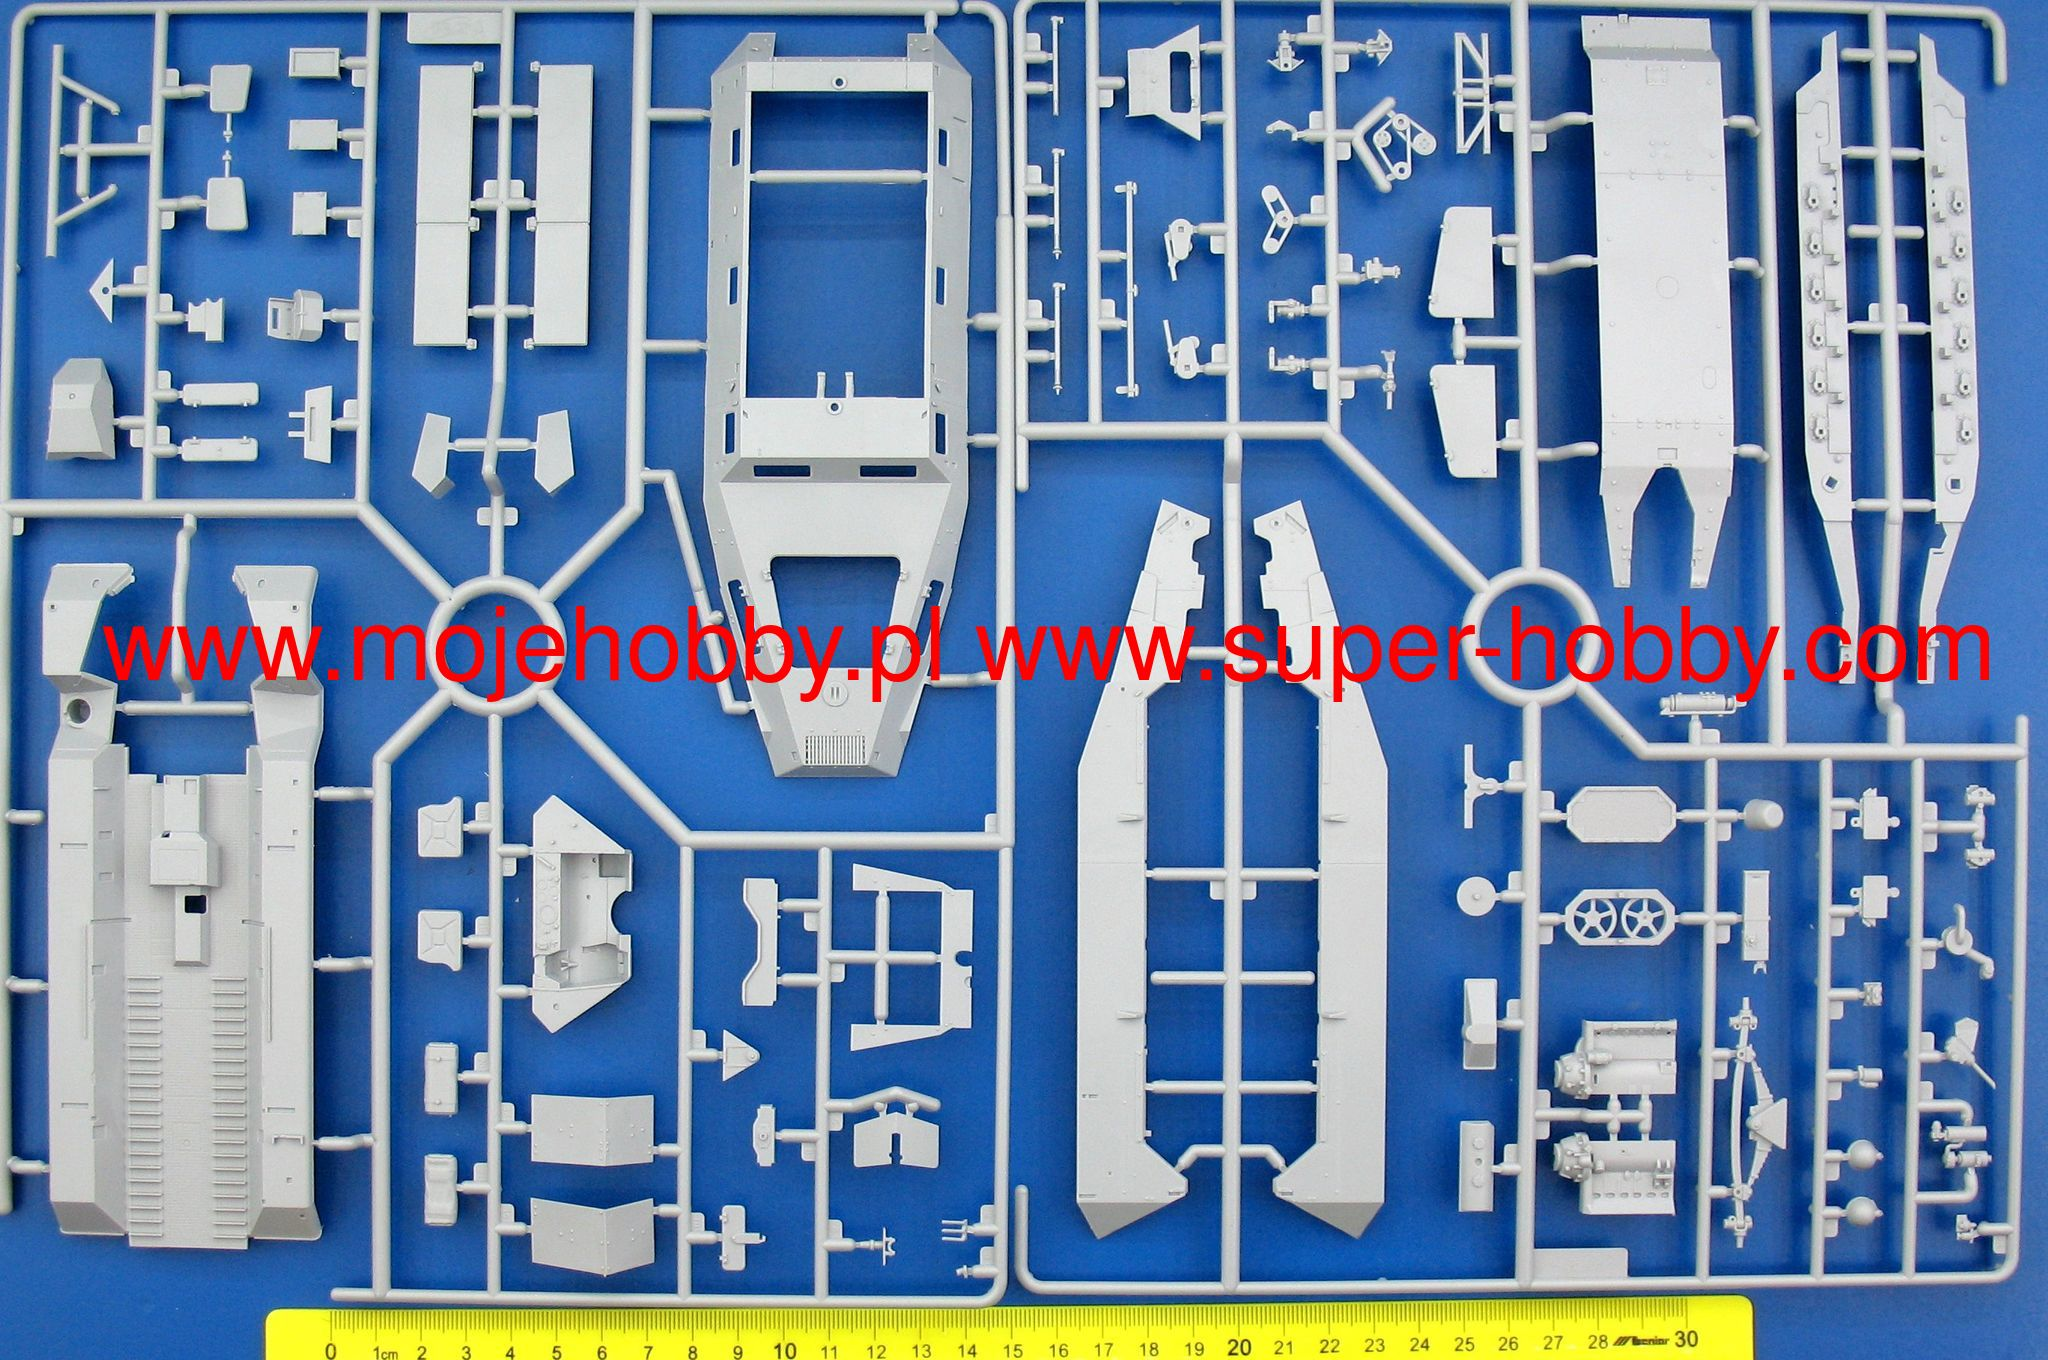 Icm 251 Wiring Diagram Trusted Diagrams Circuit Board Sd Kfz 1 Ausf A 35101 Lights